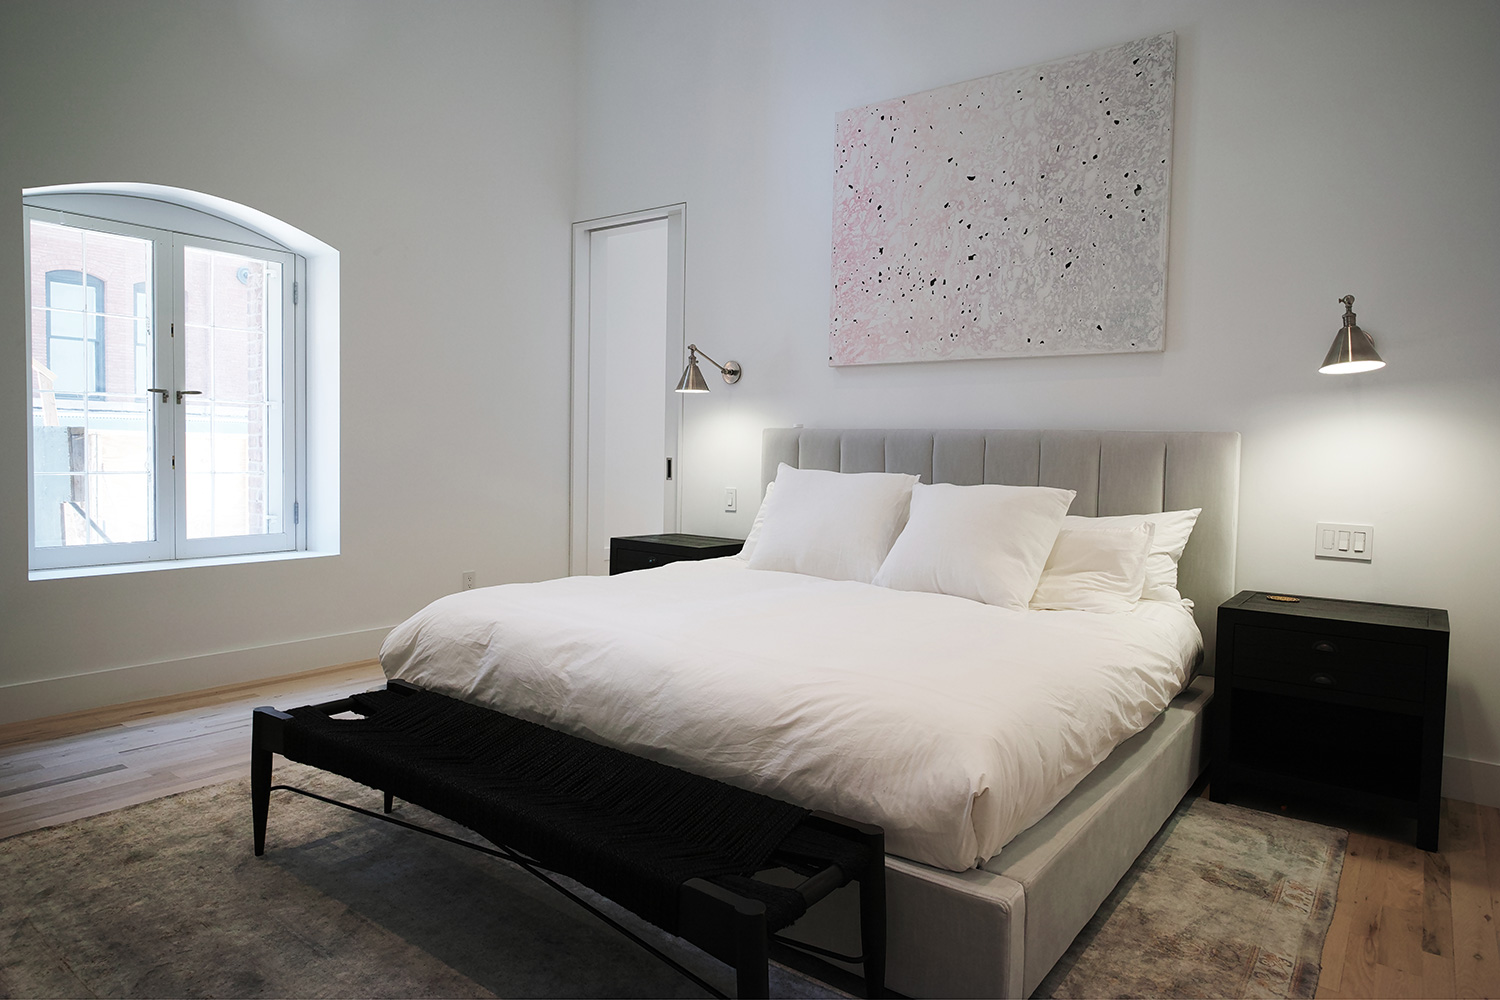 EAU-Tribeca-Loft-master-bedroom.jpg